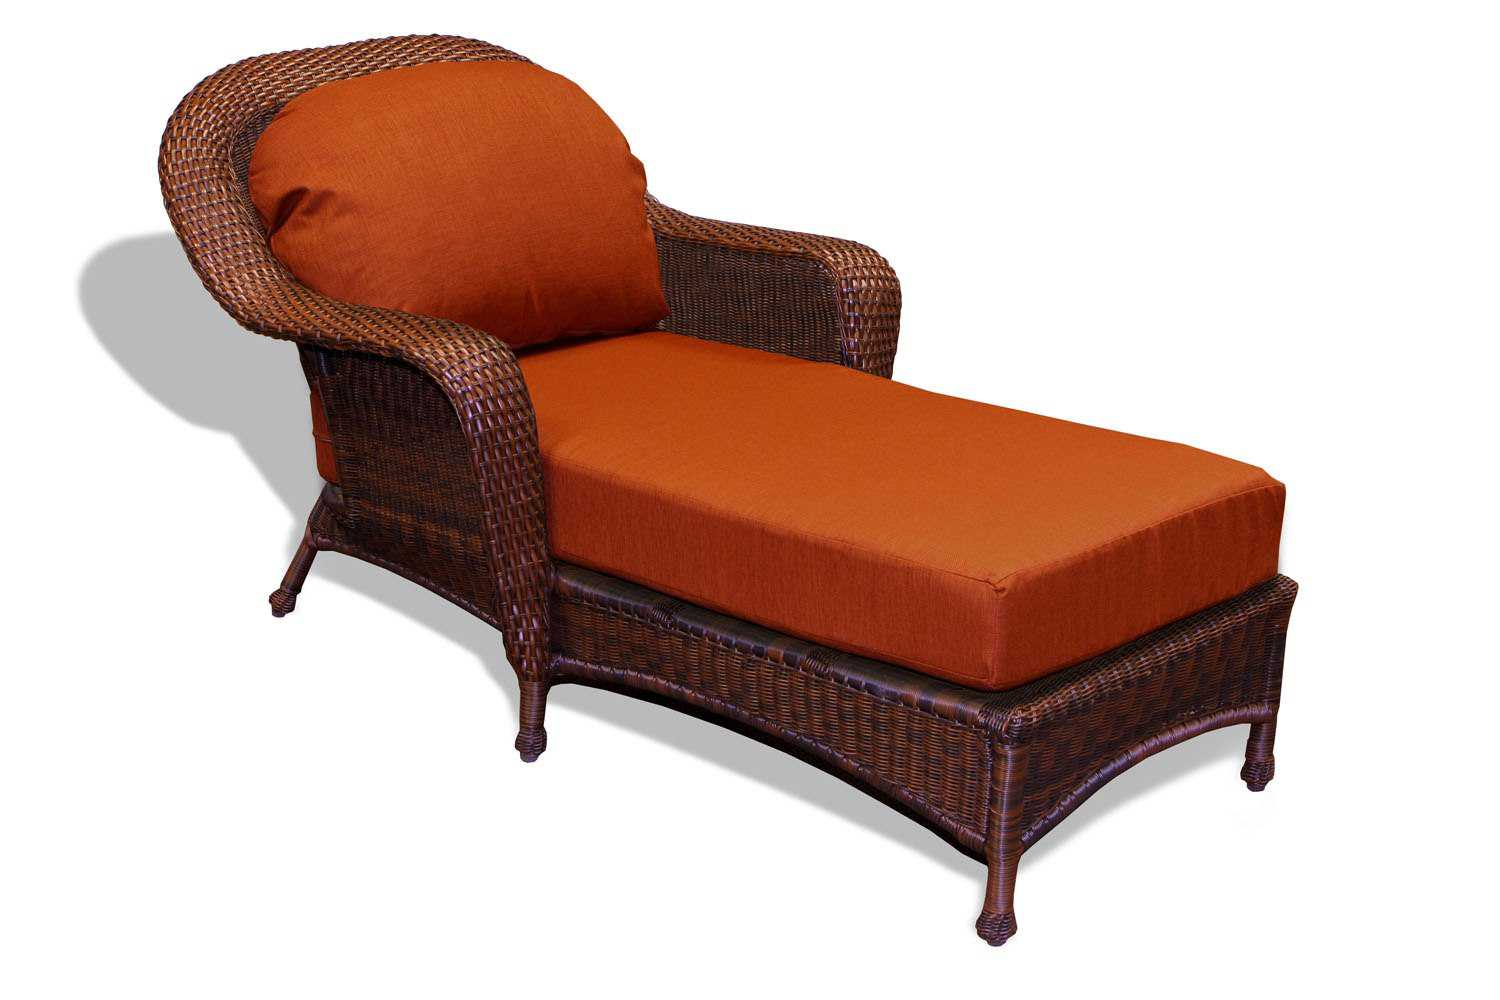 Tortuga outdoor lexington wicker cushion chaise lounge for Chaise longue cushions